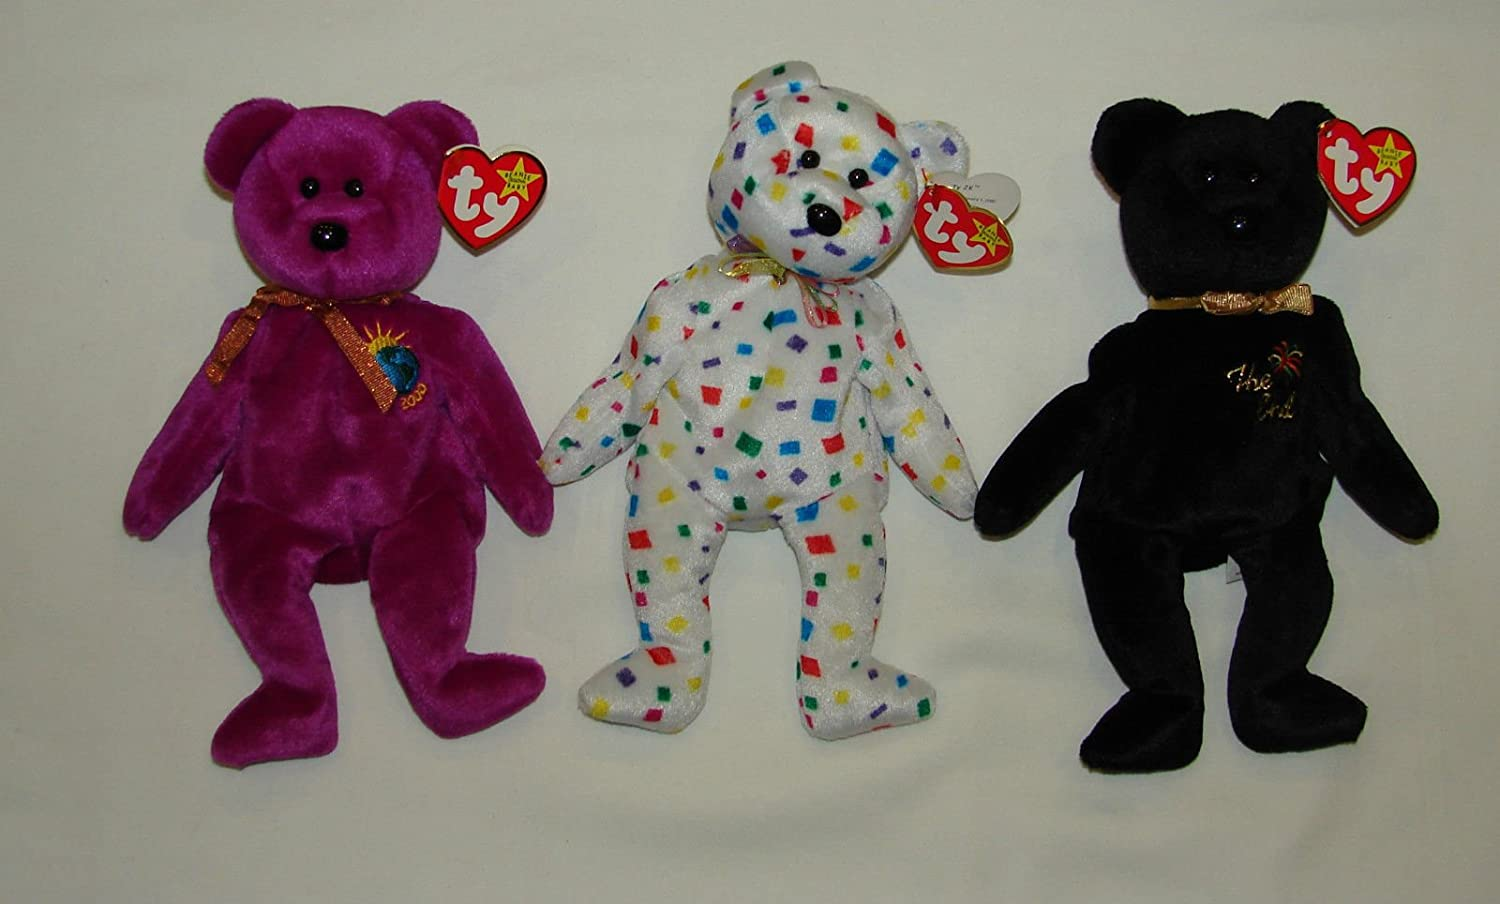 81a037395b1 Amazon.com  Ty Beanie Babies Lot of 3 Millennium Bears Retired - All Mint  with Tags  Sports Collectibles